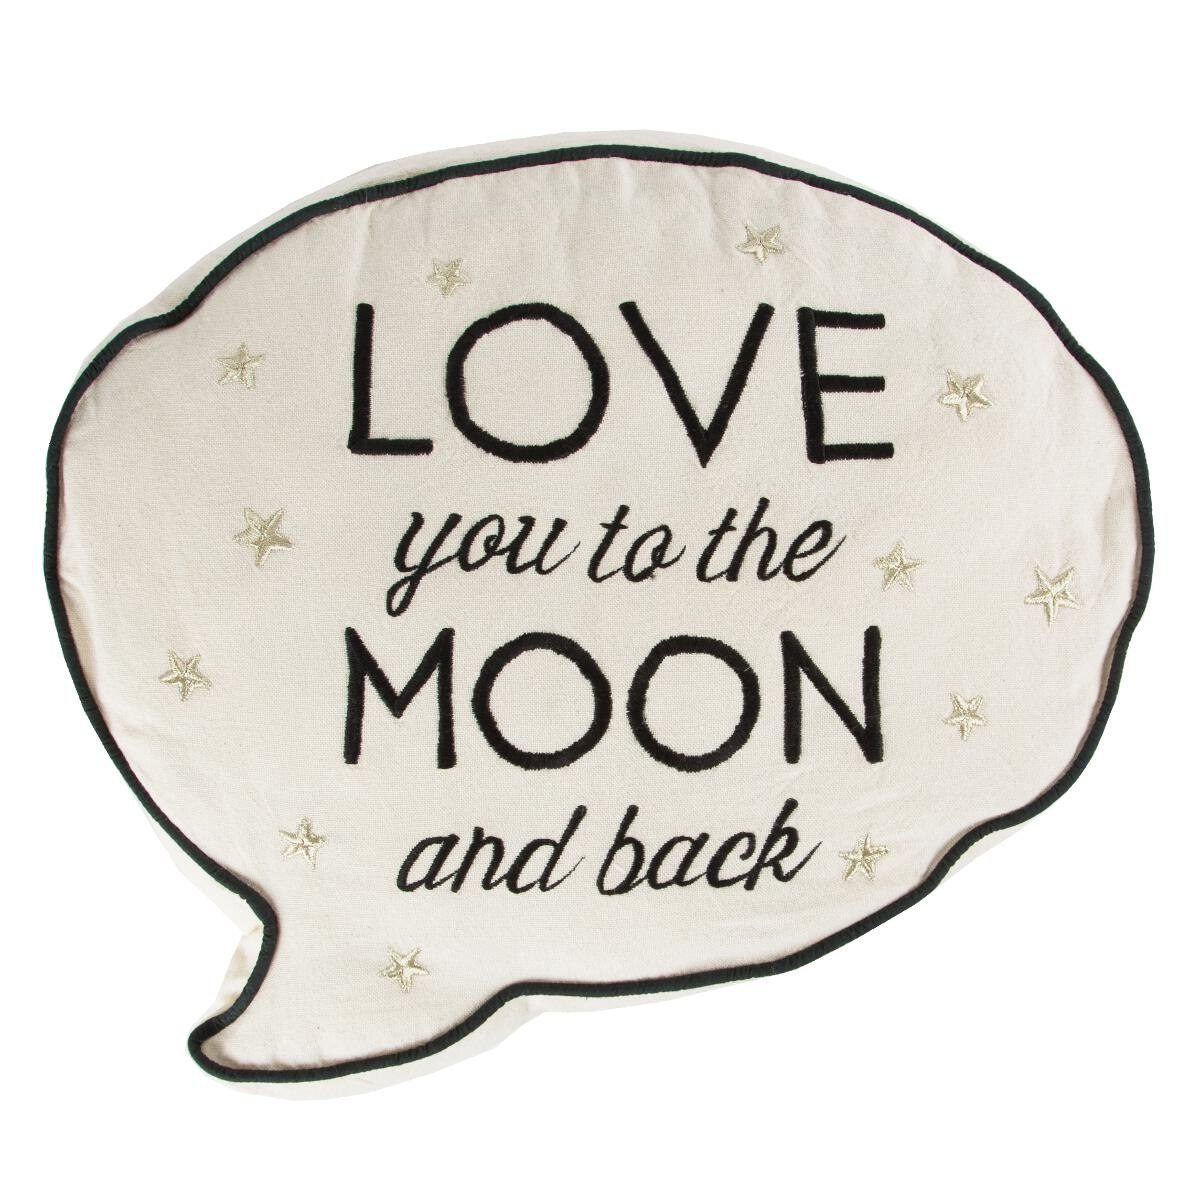 Kudde - Love you to the moon and back  bcd1ae93da06a